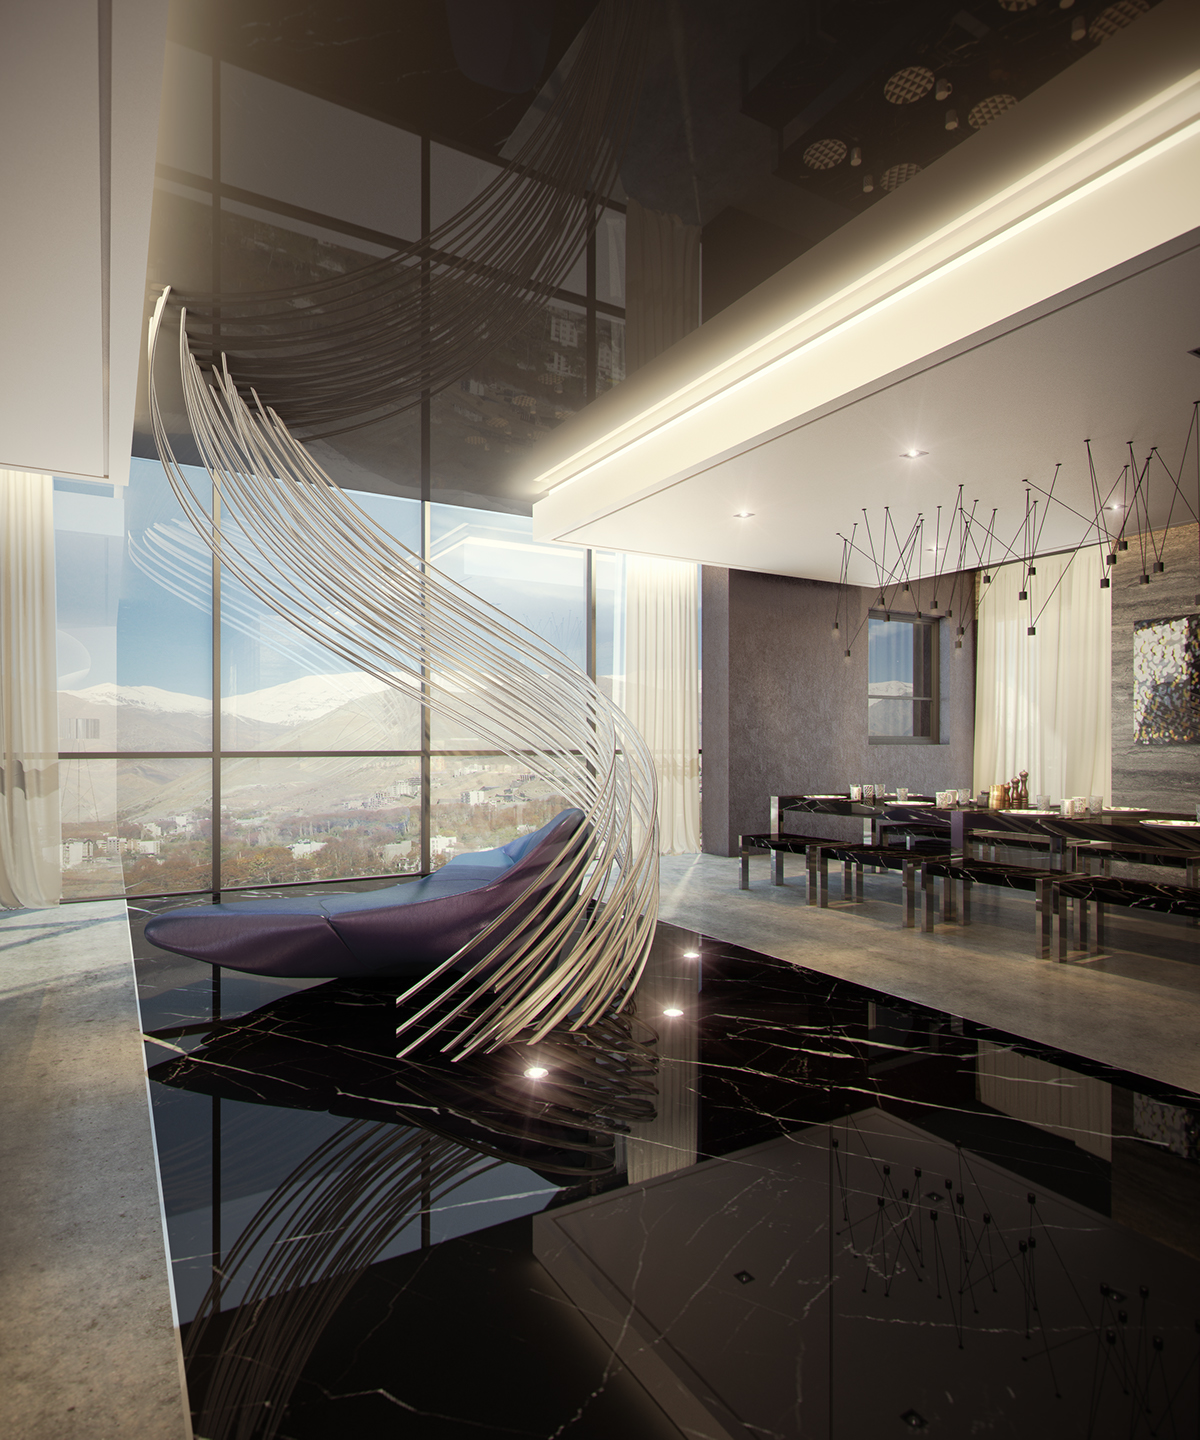 Ultra Modern Kitchen Designs You Must See Utterly Luxury: LUXURY PENTHOUSE On Behance